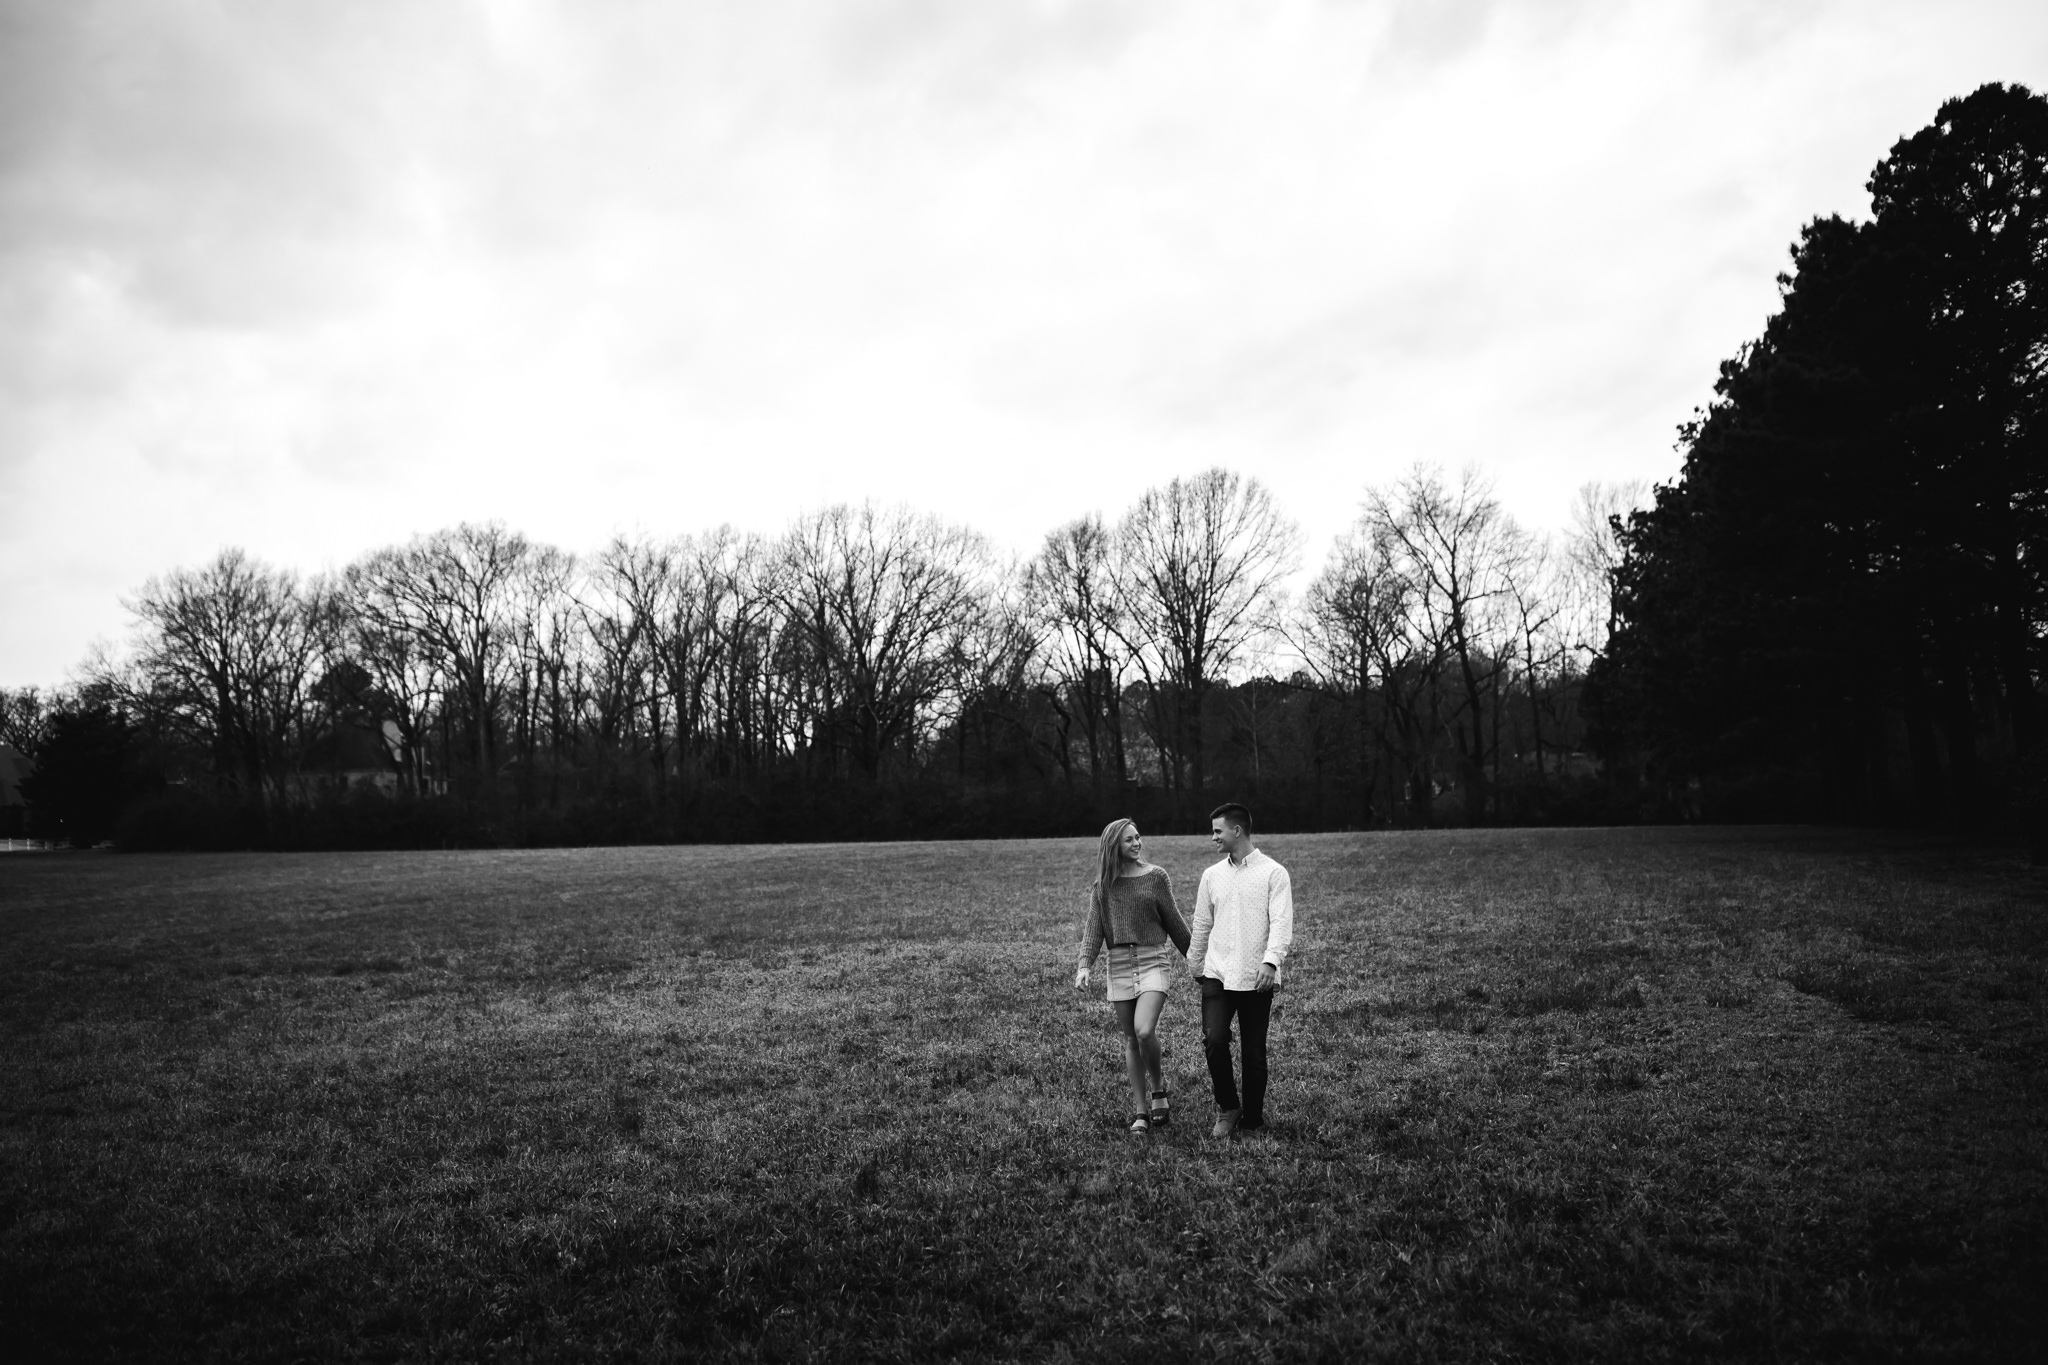 memphis-engagement-photographer-thewarmtharoundyou-greenhouse-engagement-pictures (61 of 118).jpg